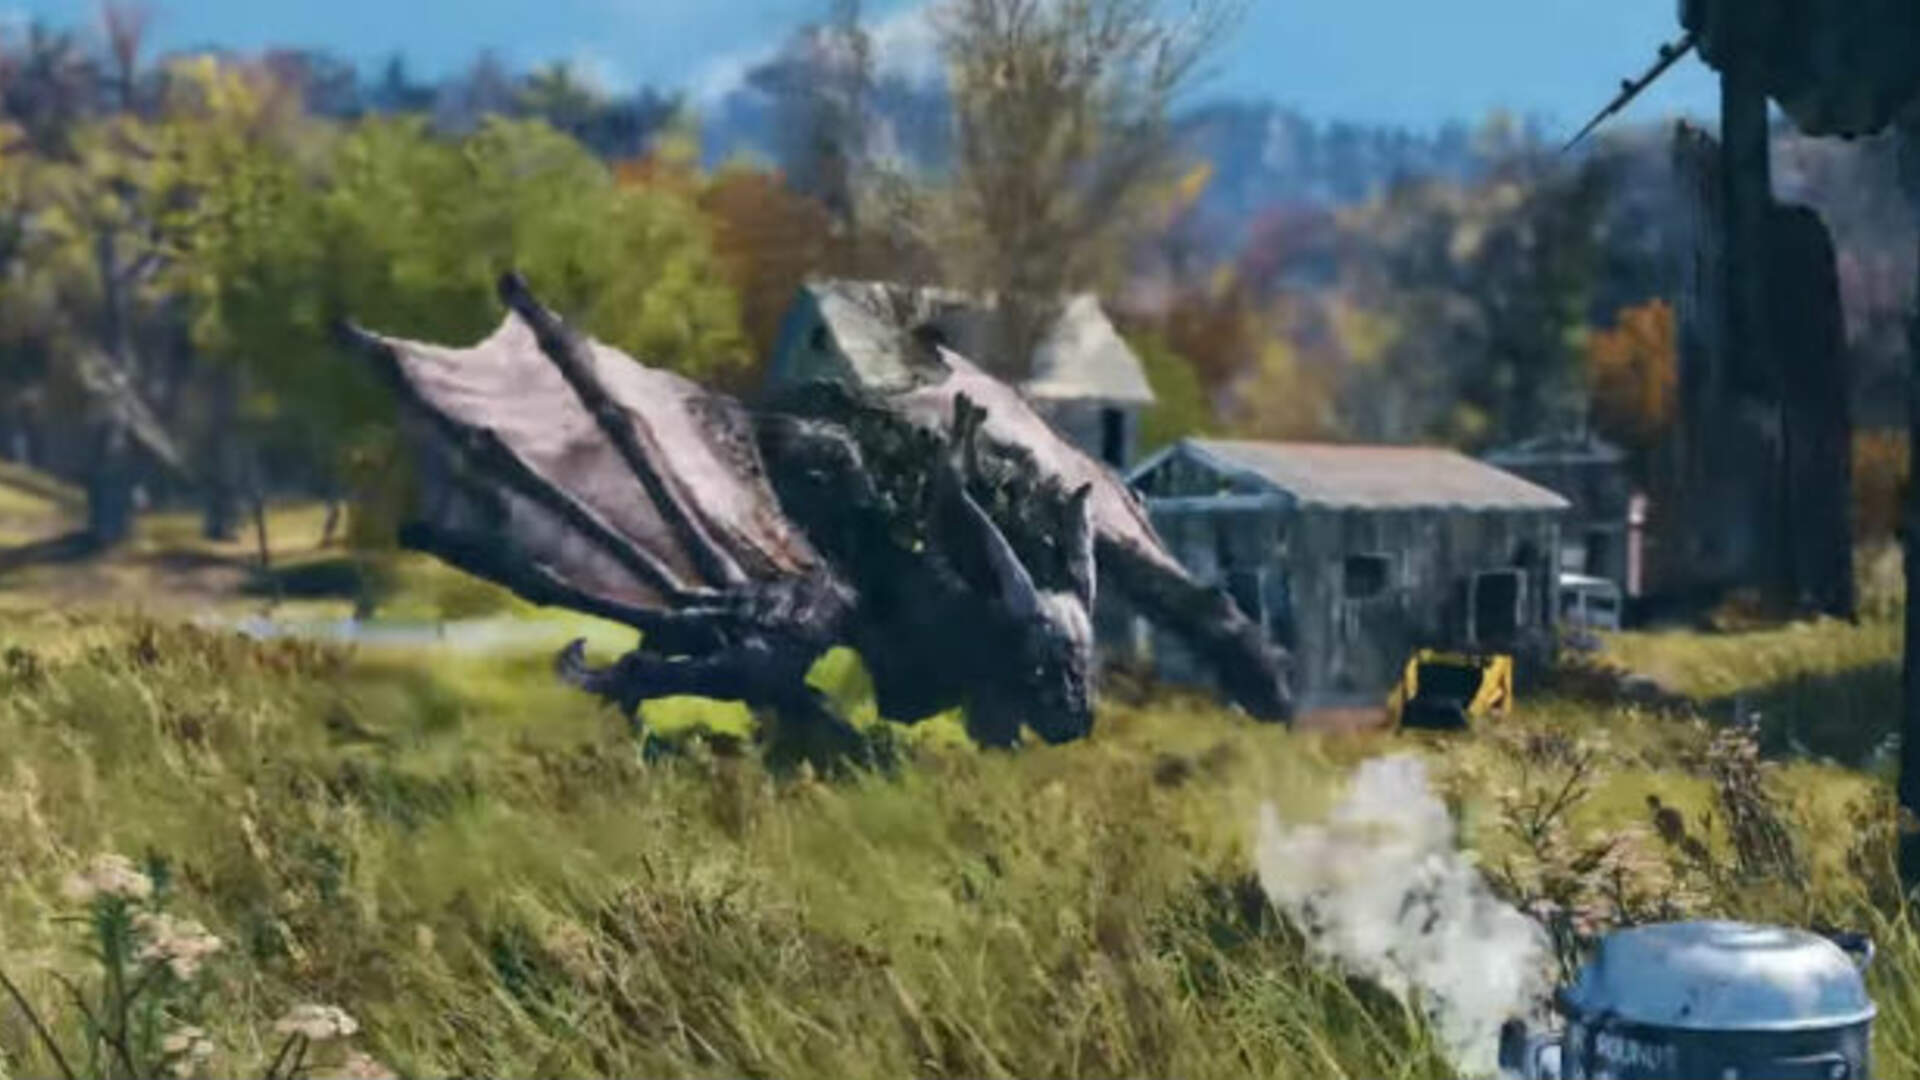 The Scorchbeast is Fallout 76's Answer to Skyrim's Dragons (Except Way More Dangerous)